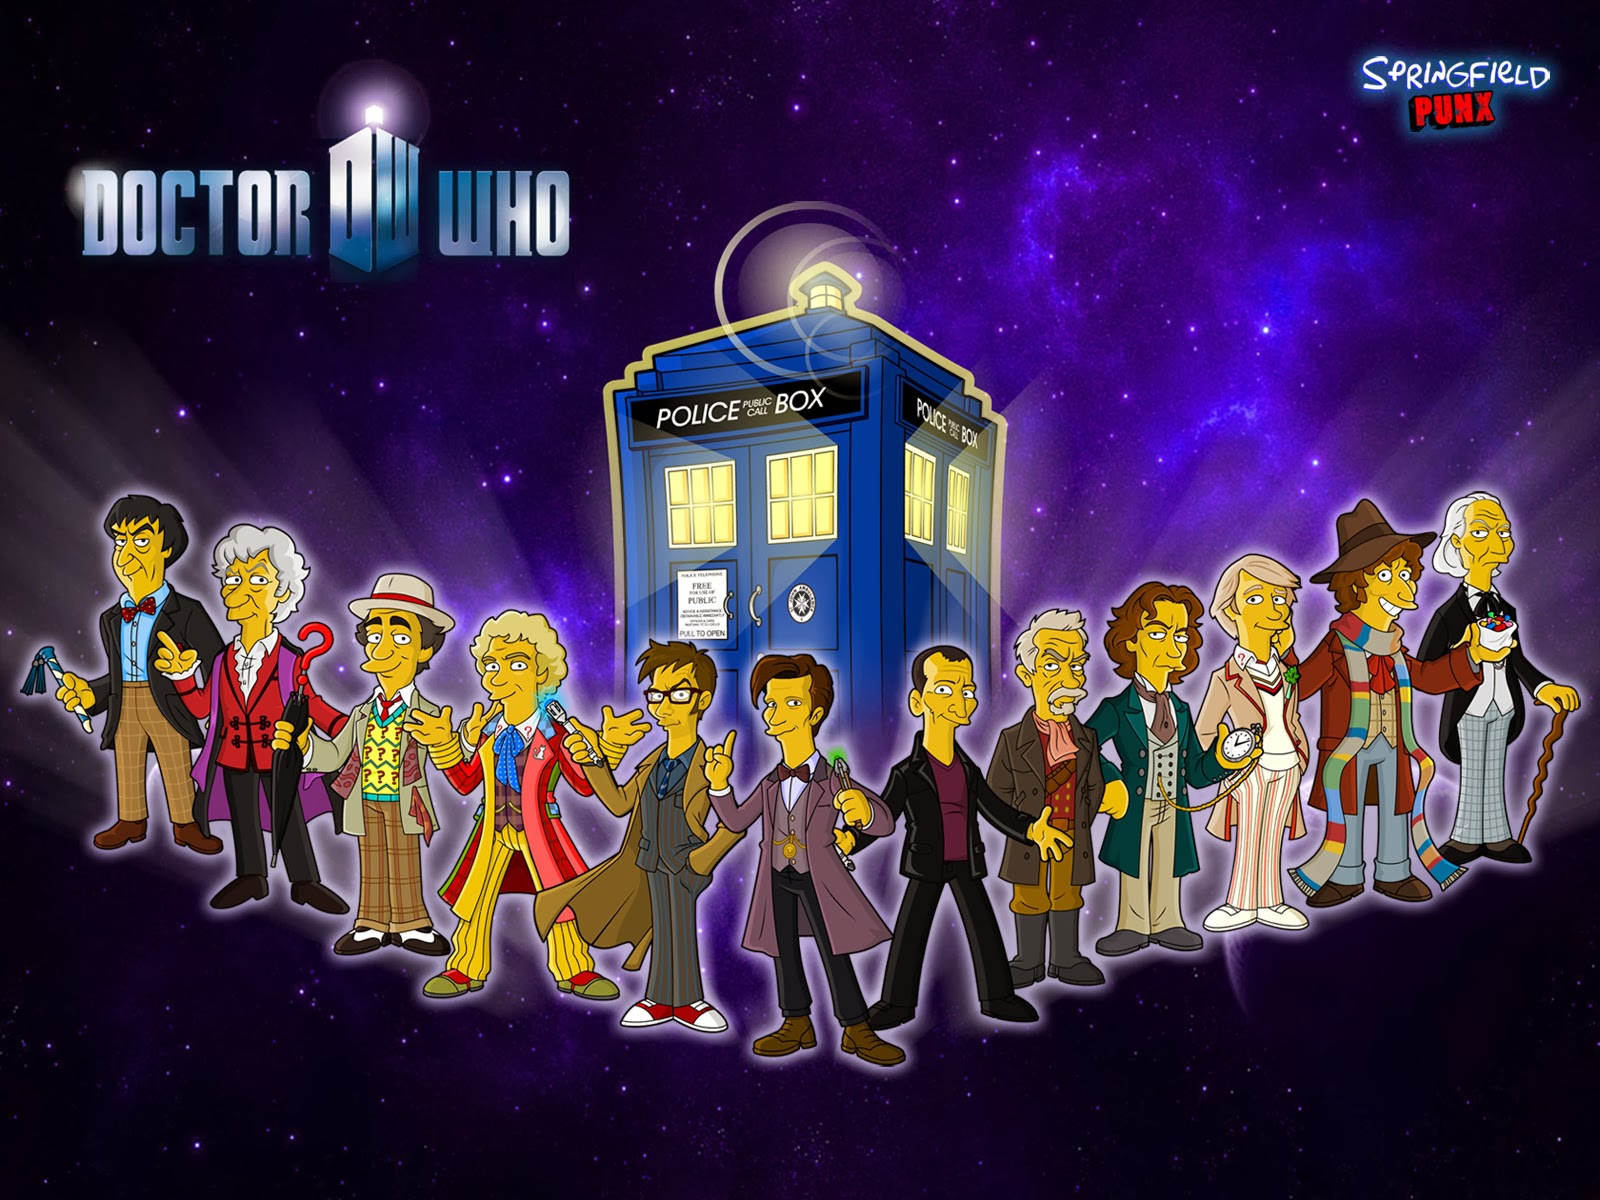 Springfield punx new doctor who wallpaper new doctor who wallpaper voltagebd Image collections